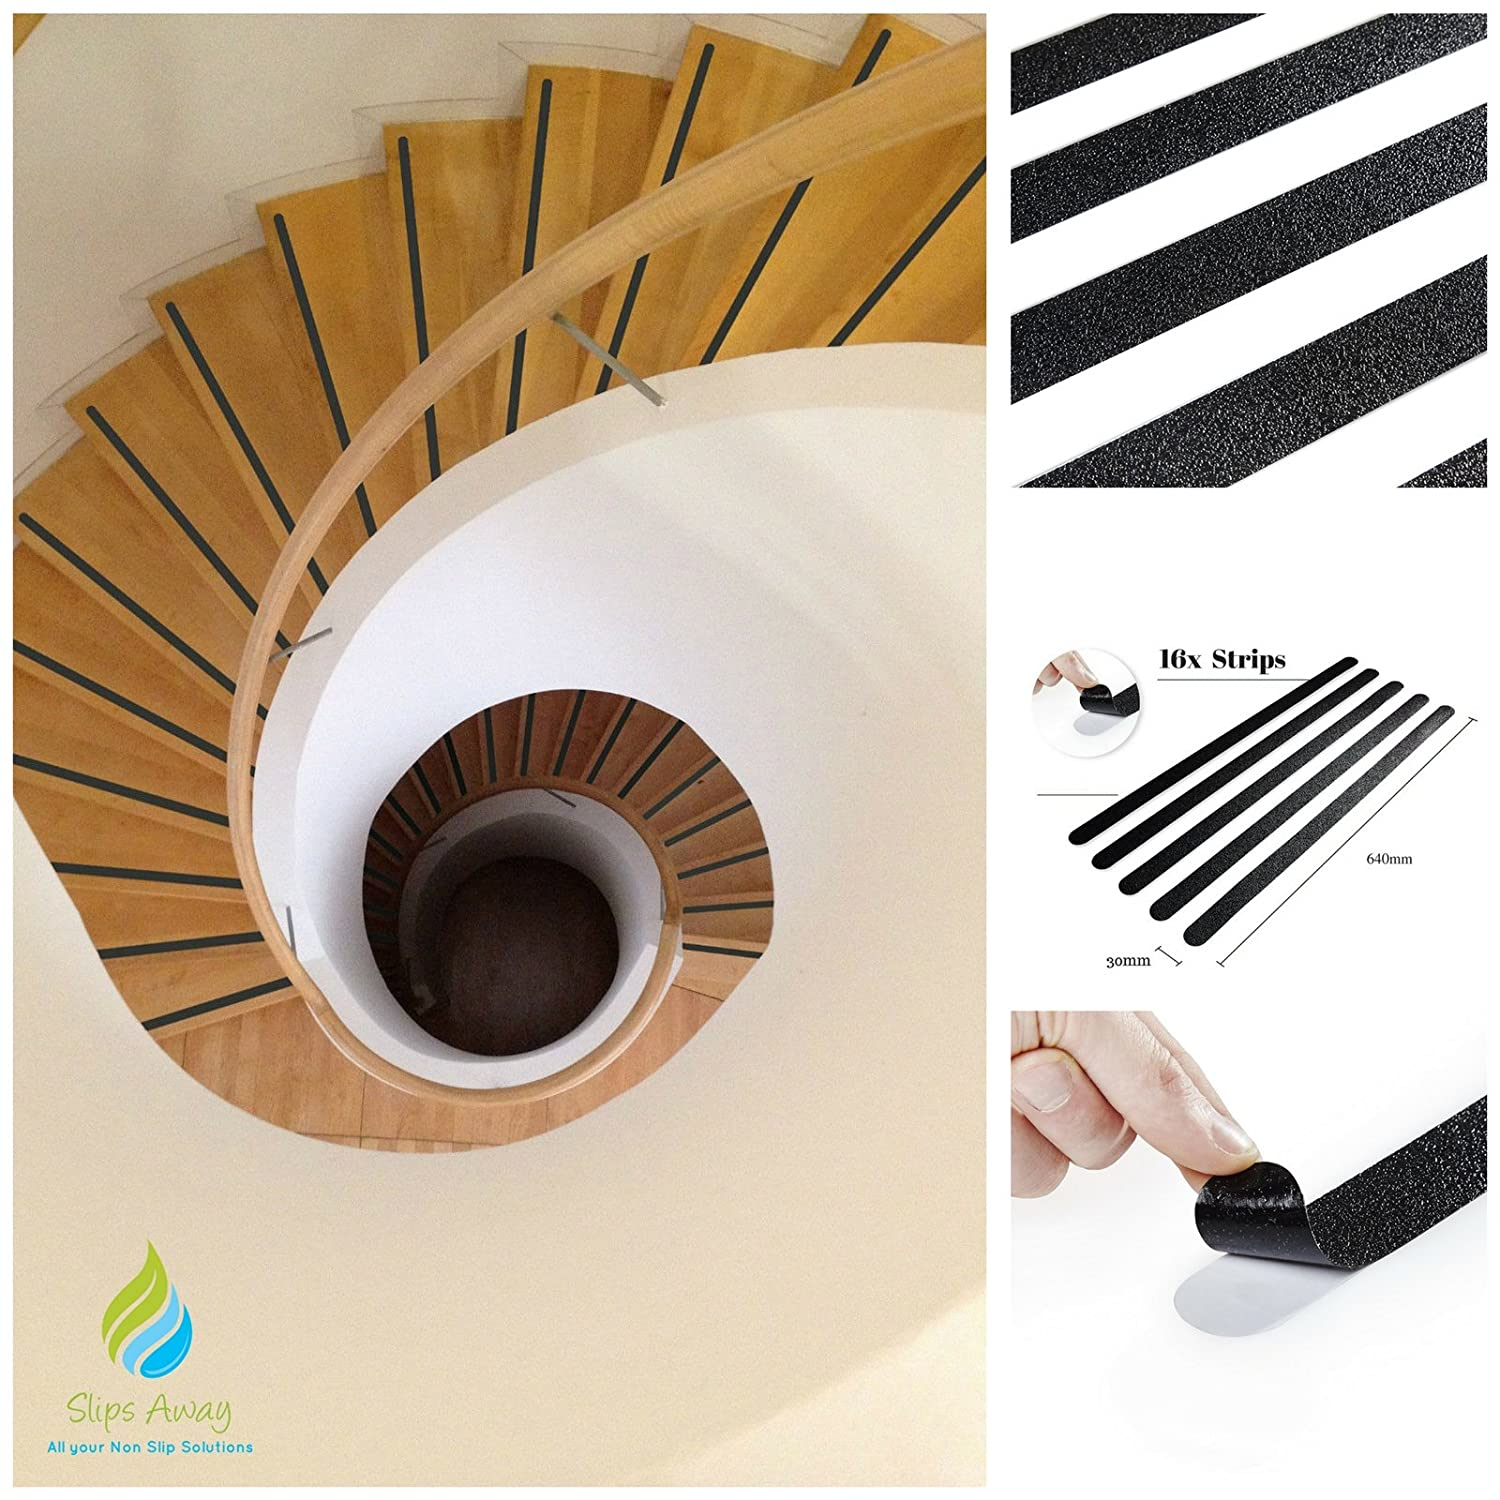 16x Anti Slip Tape Stair Black Safety Grip Strips - Perfect for Stairs Step Laminate Wooden Floor Hallway - Strong Textured Adhesive Sticker Tape Treads - Keep your Family Baby Child Kids Elderly Safe from Slips ( HIGHEST QUALITY) - SLIPS AWAY®